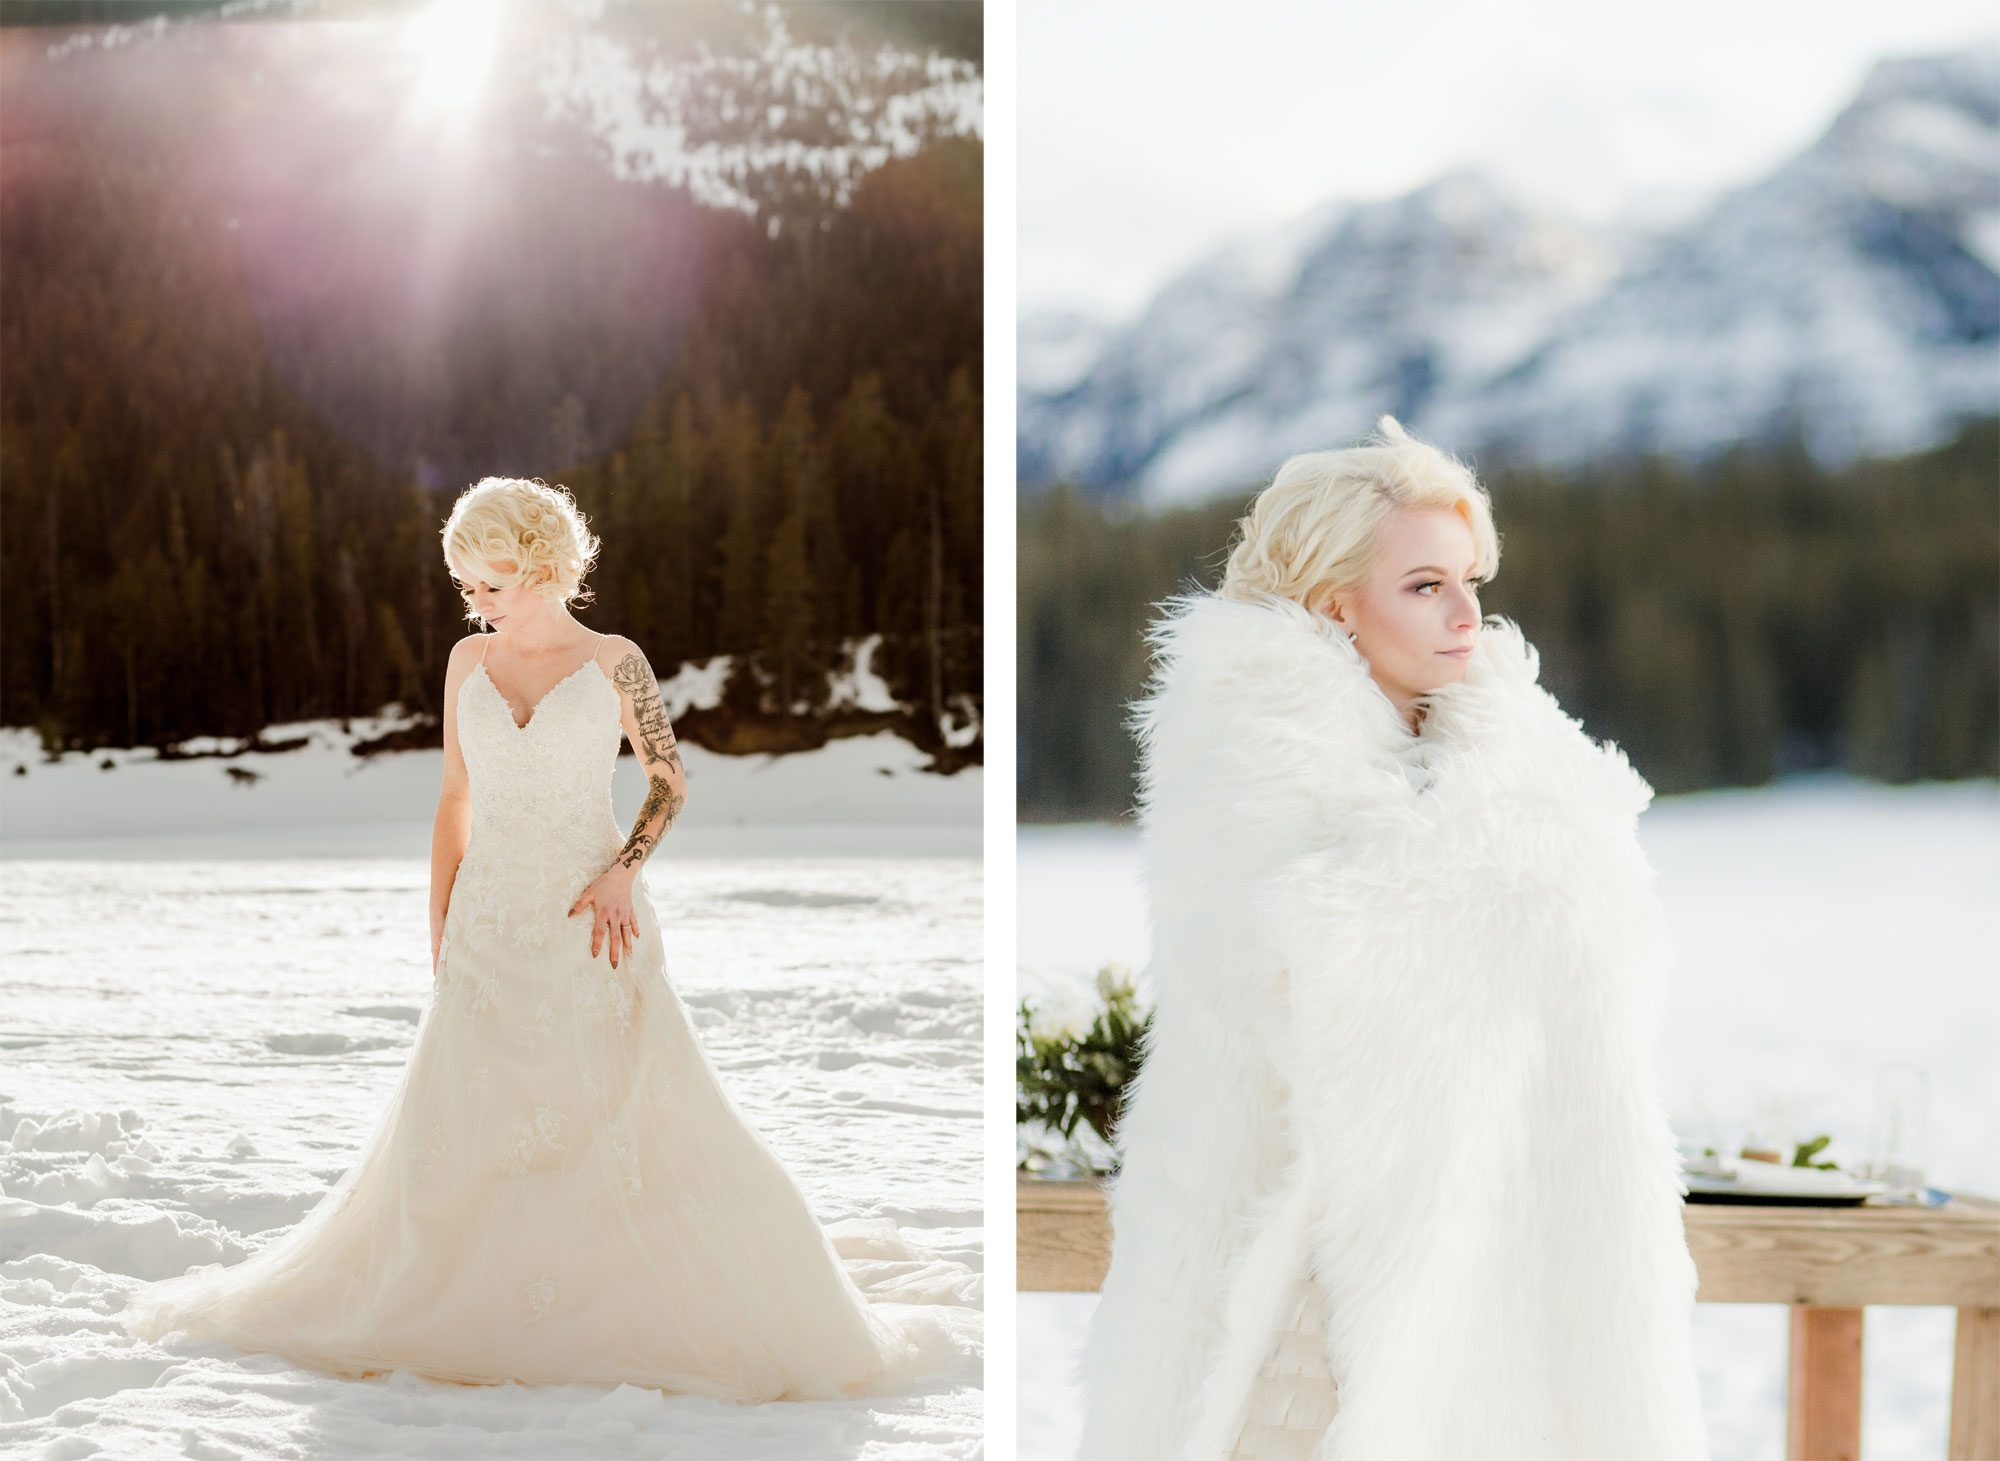 Beautiful bride in the snow wrapped in fur in Montana